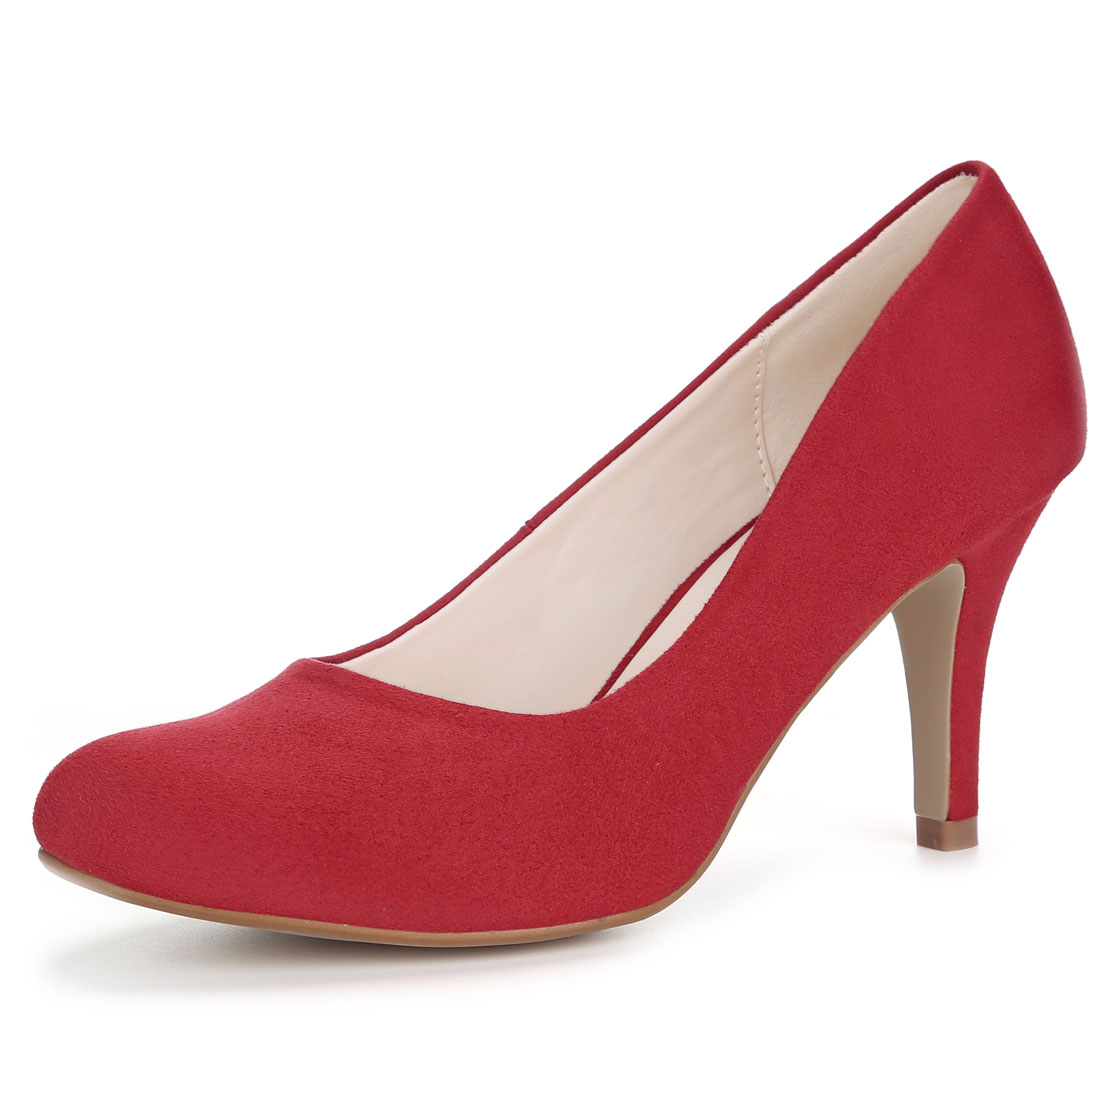 Women Rounded Toe Stiletto High Heel Classic Pumps Red US 7.5